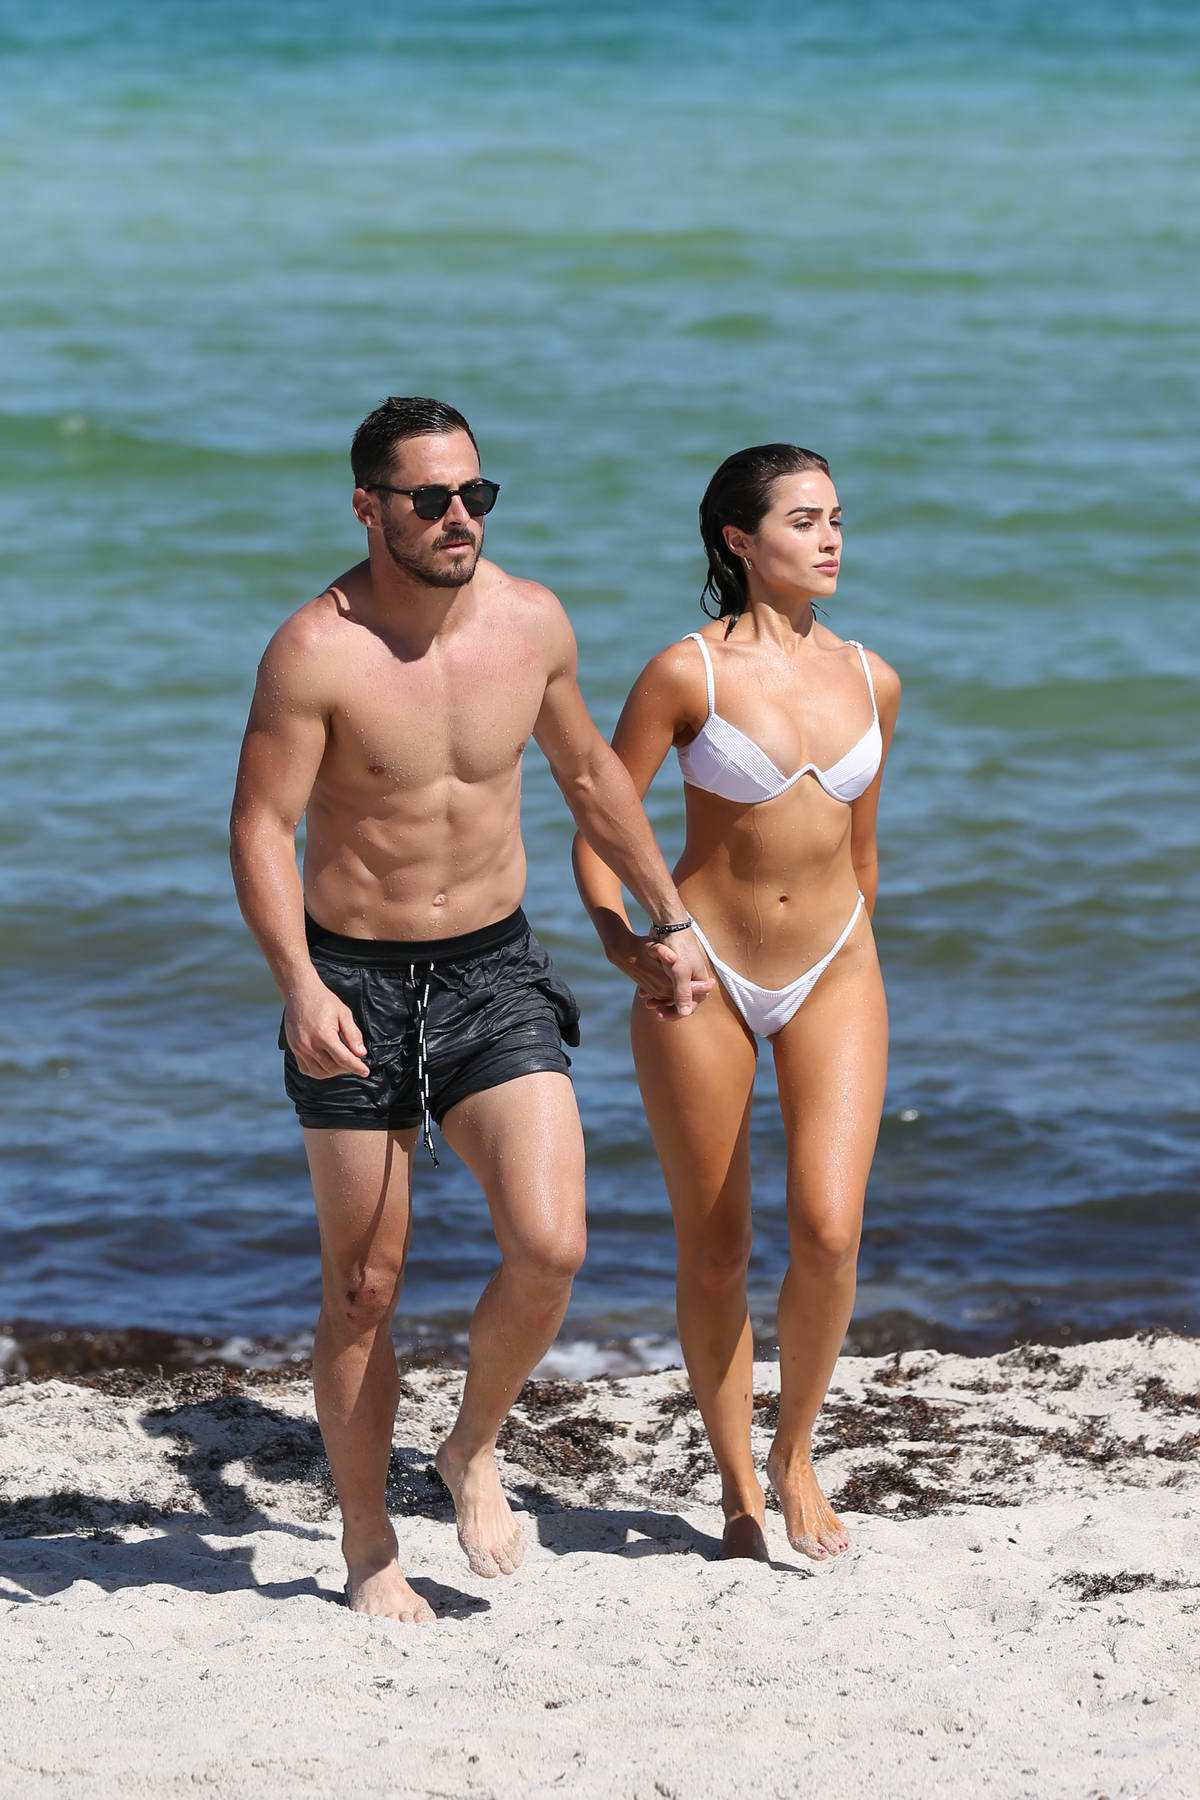 Olivia Culpo rocks a white bikini while enjoying the beach with boyfriend Danny Amendola in Miami, Florida